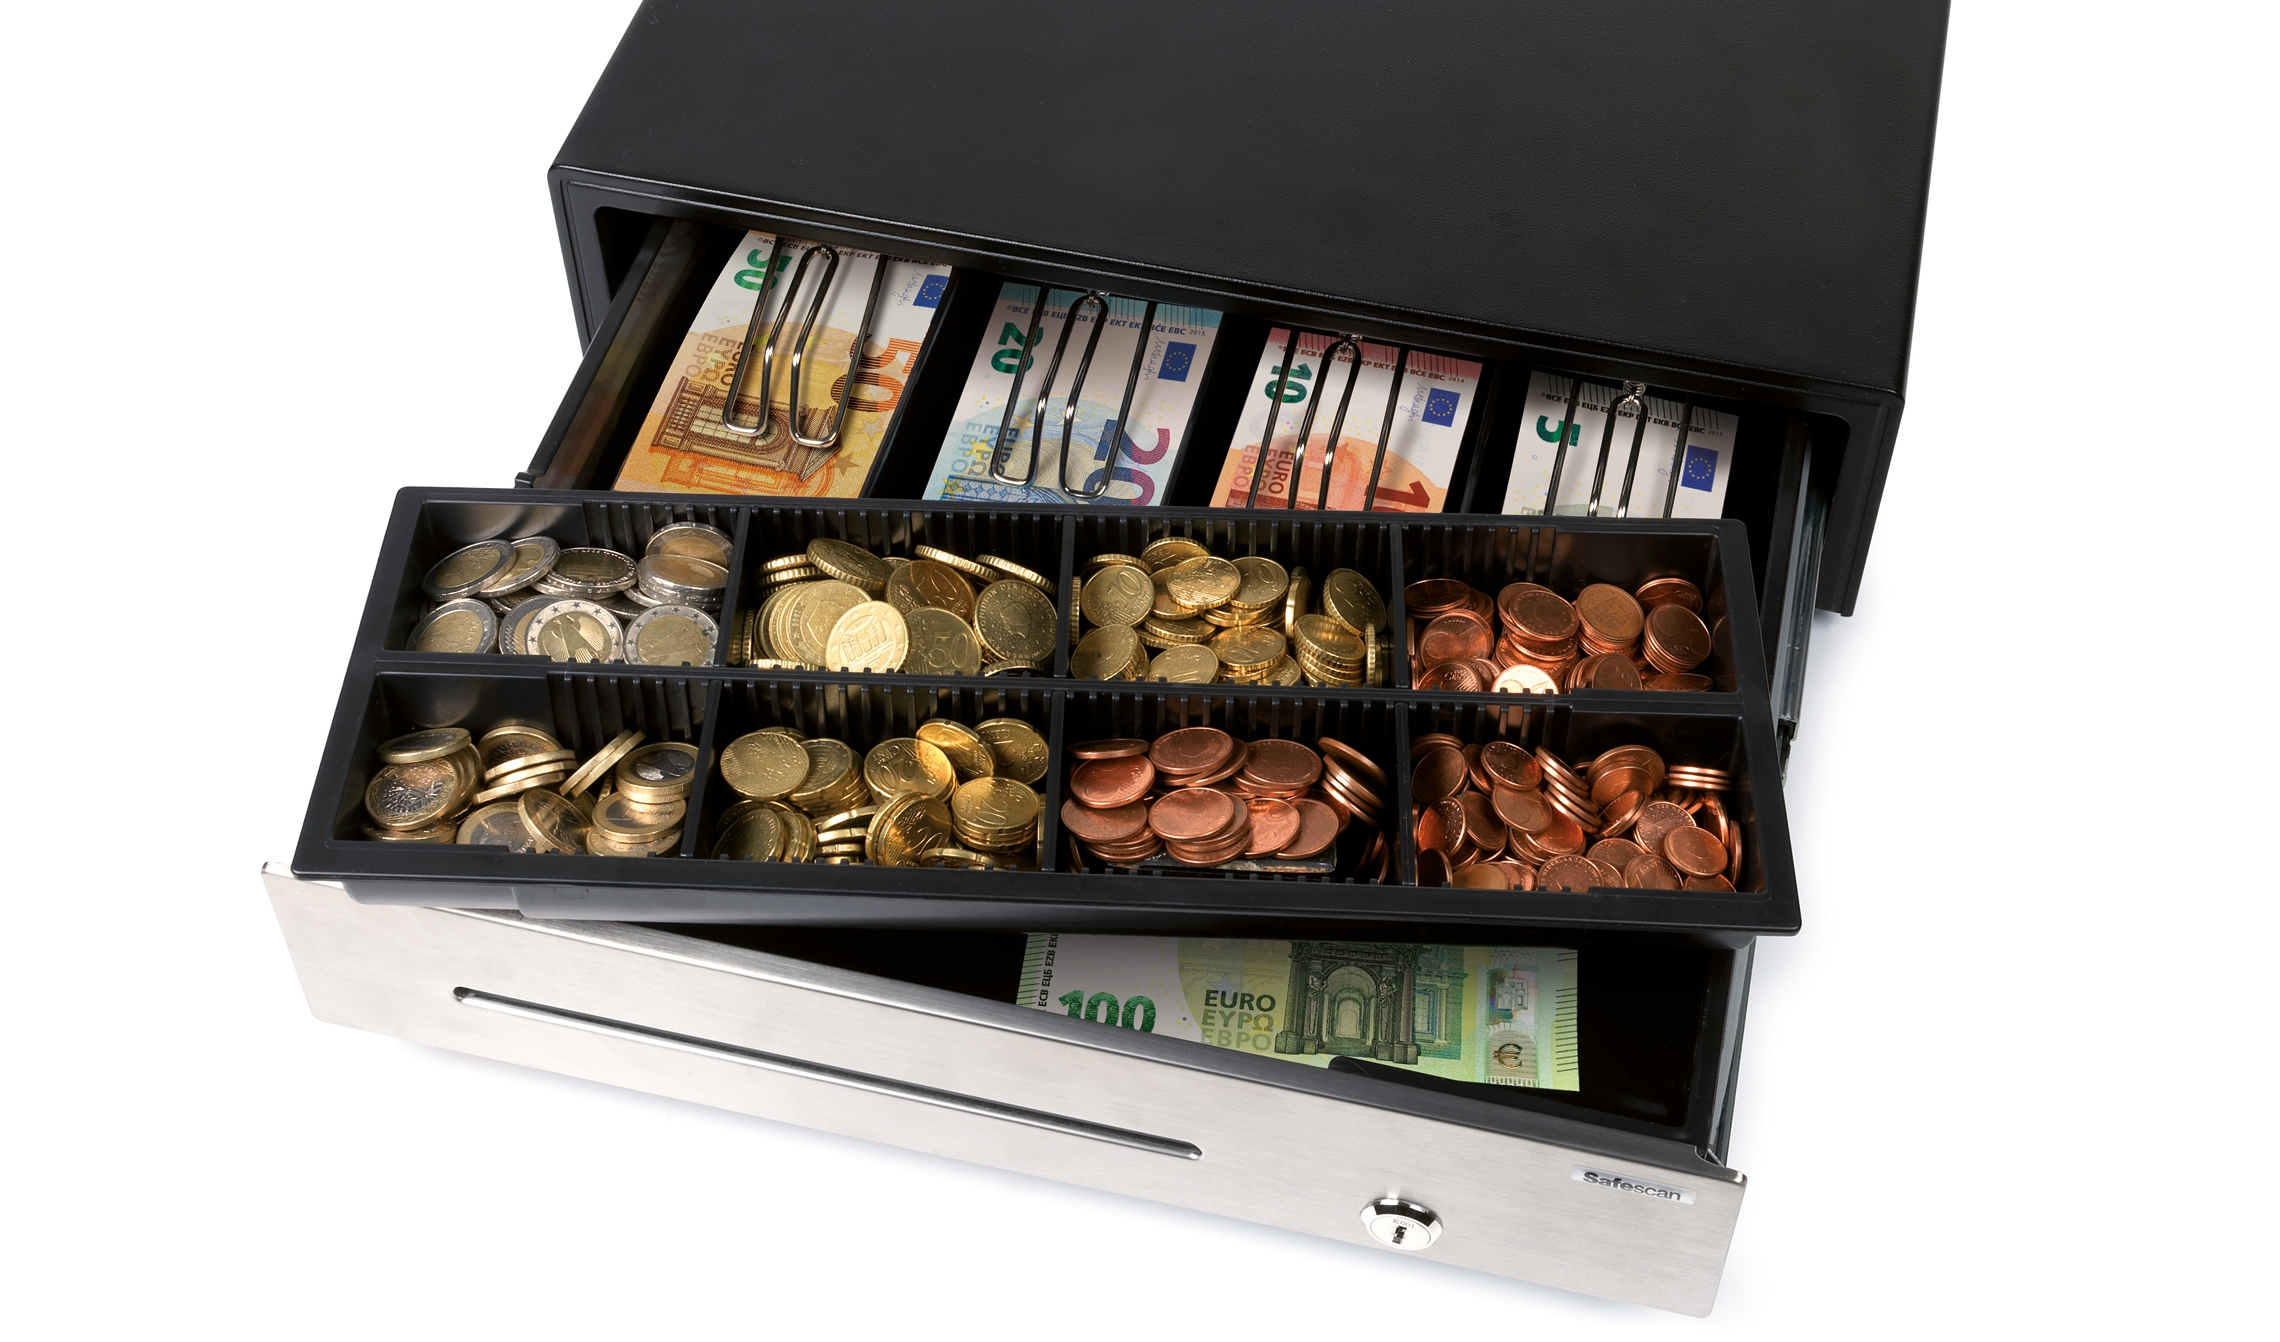 safescan-hd4141s-removable-tray